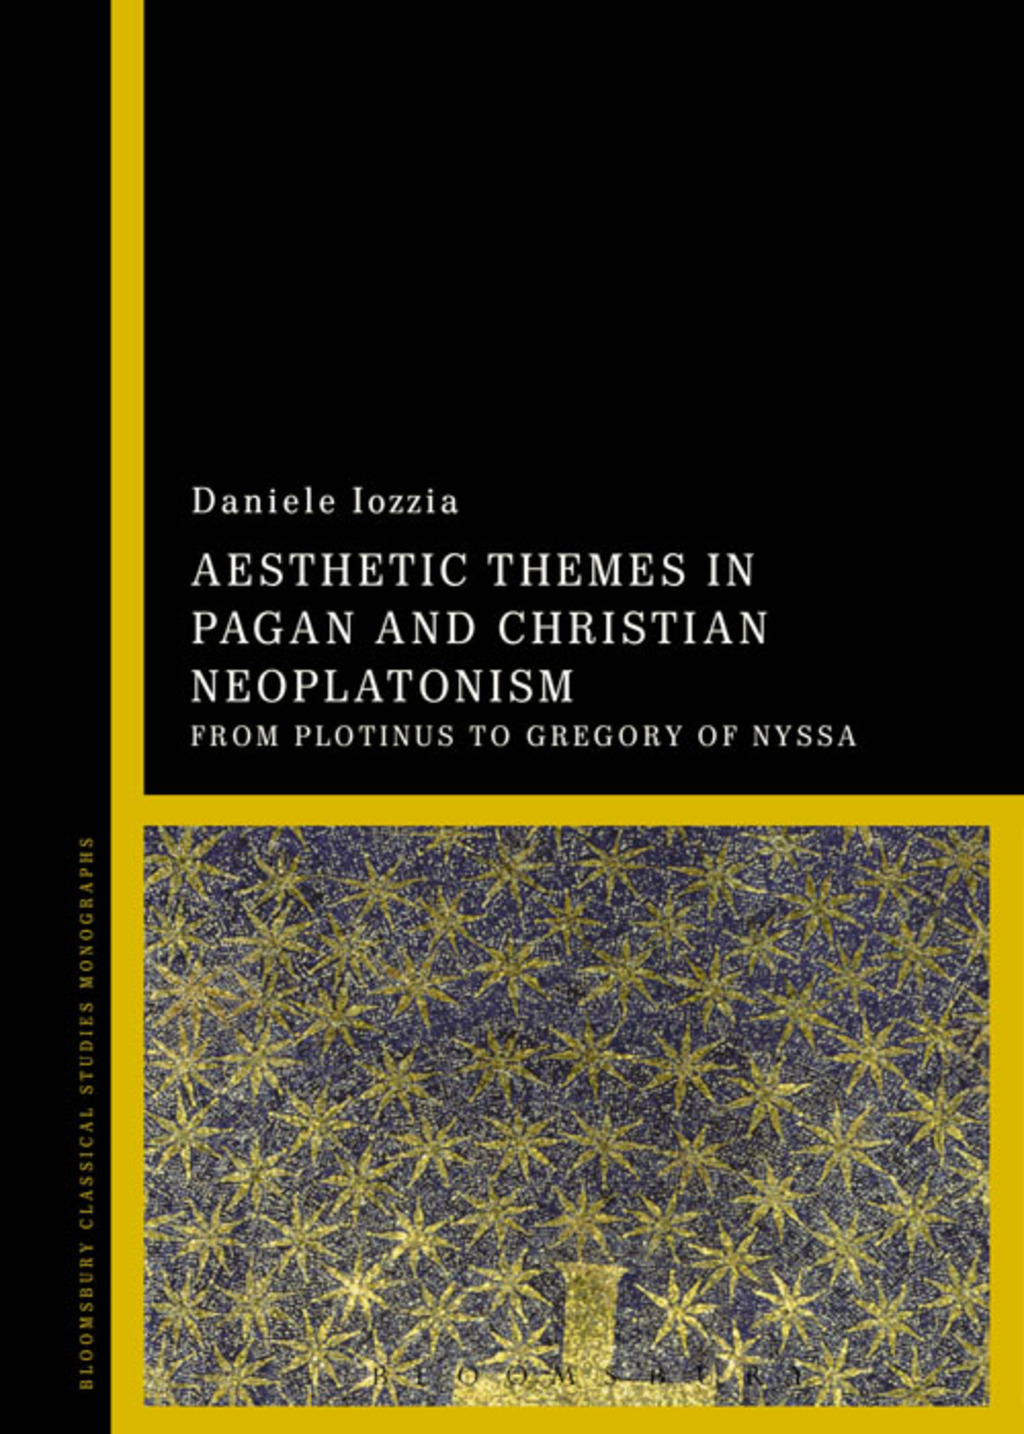 Aesthetic Themes In Pagan And Christian Neoplatonism (ebook)